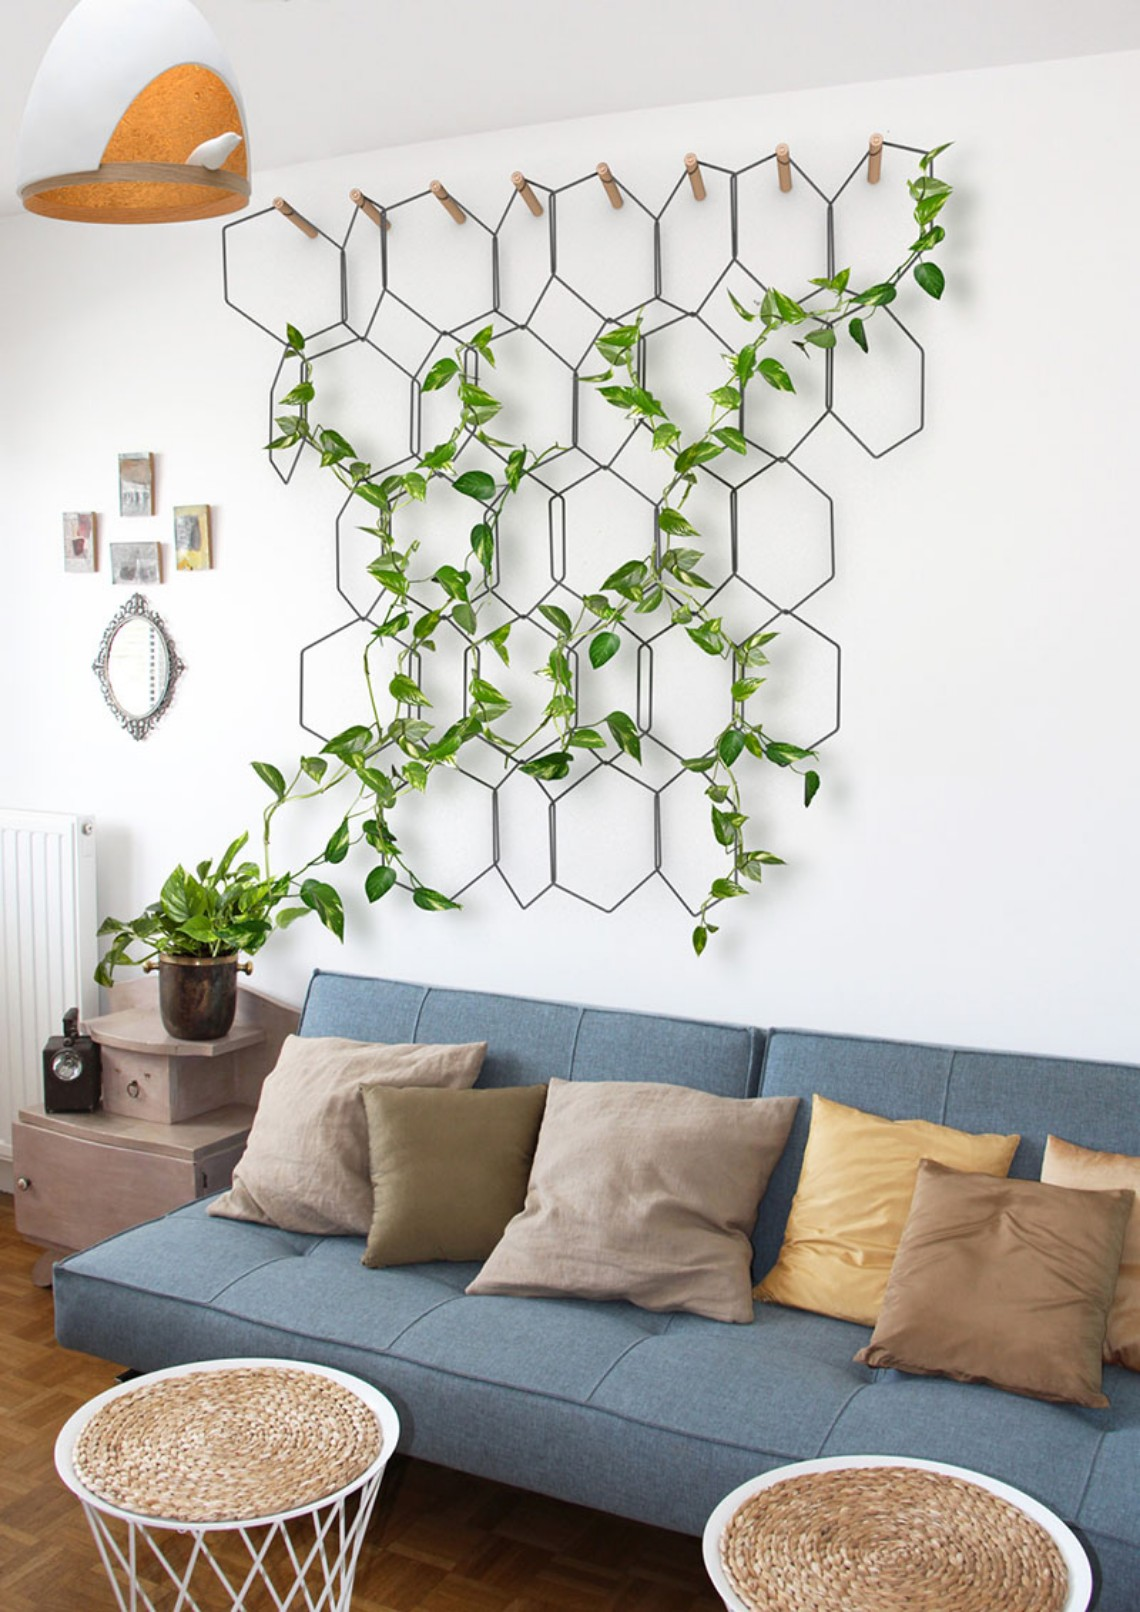 How To Include Indoor Vines In Modern Home Decor modern home decor How To Include Indoor Vines In Modern Home Decor How To Include Indoor Vines In Modern Home Decor 3